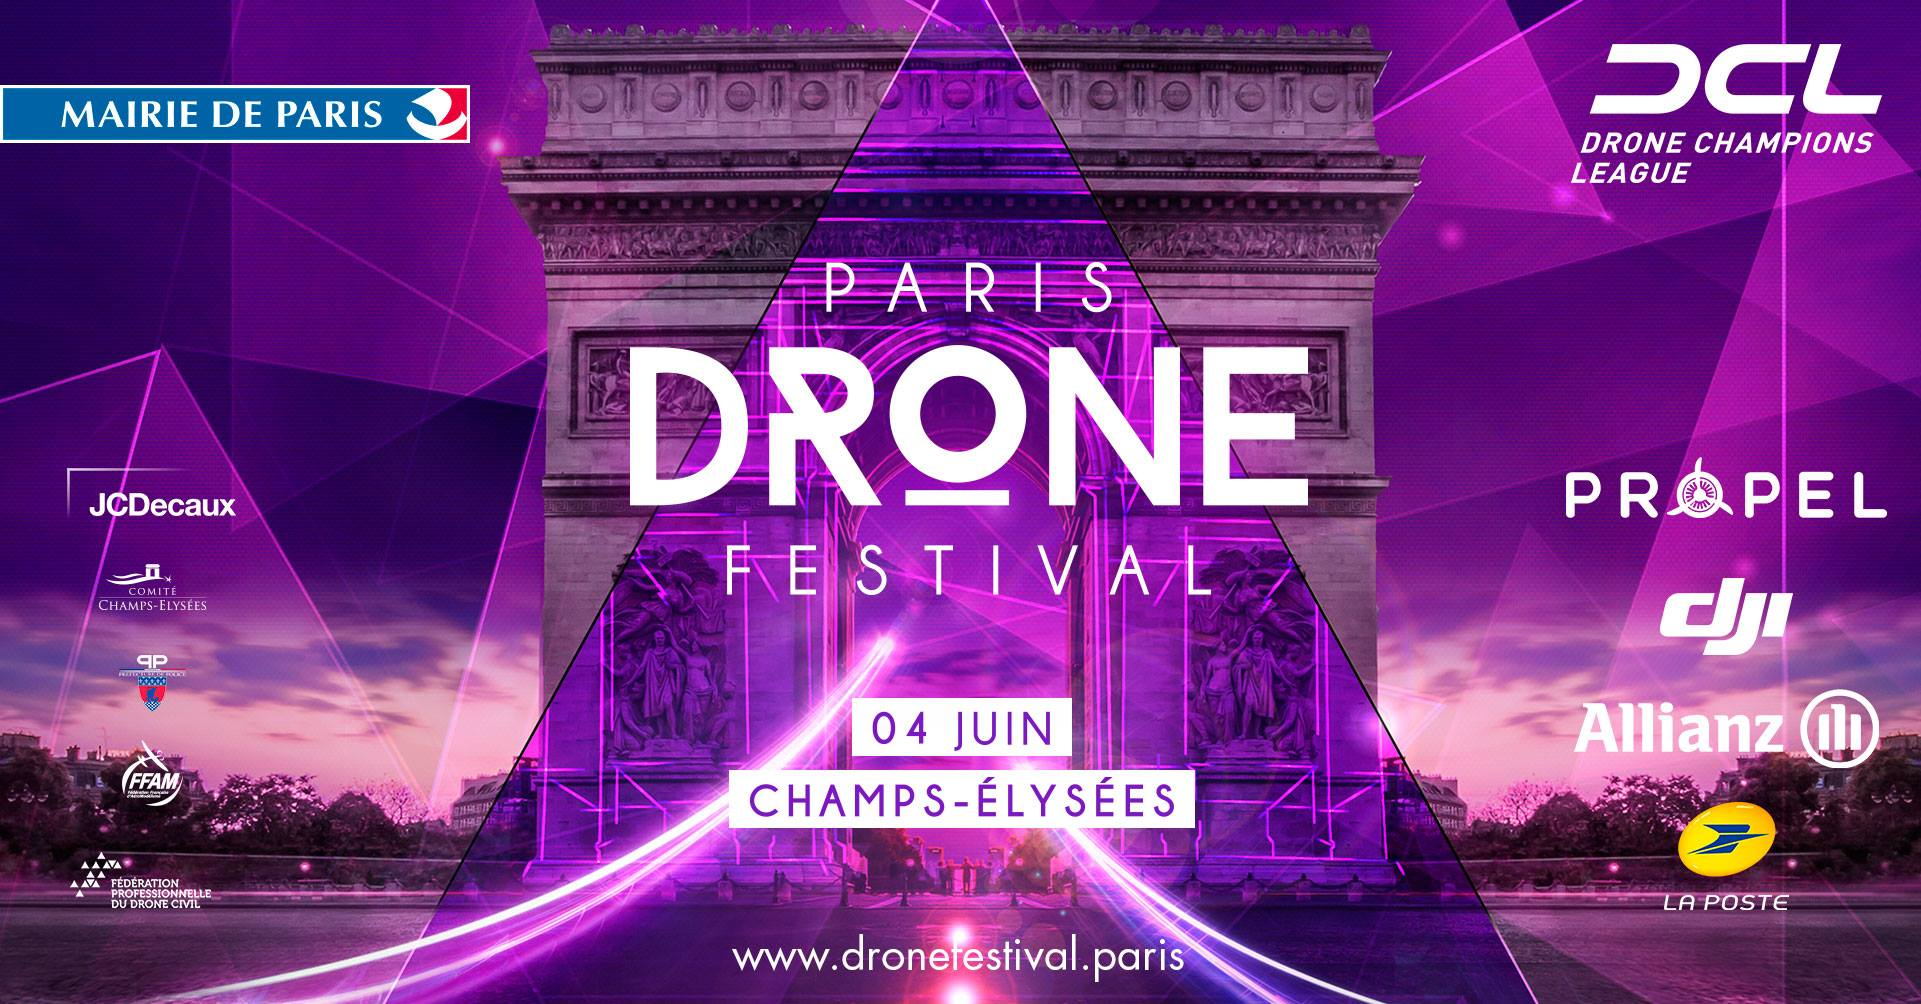 paris drone festival 2017 drone fpv news. Black Bedroom Furniture Sets. Home Design Ideas